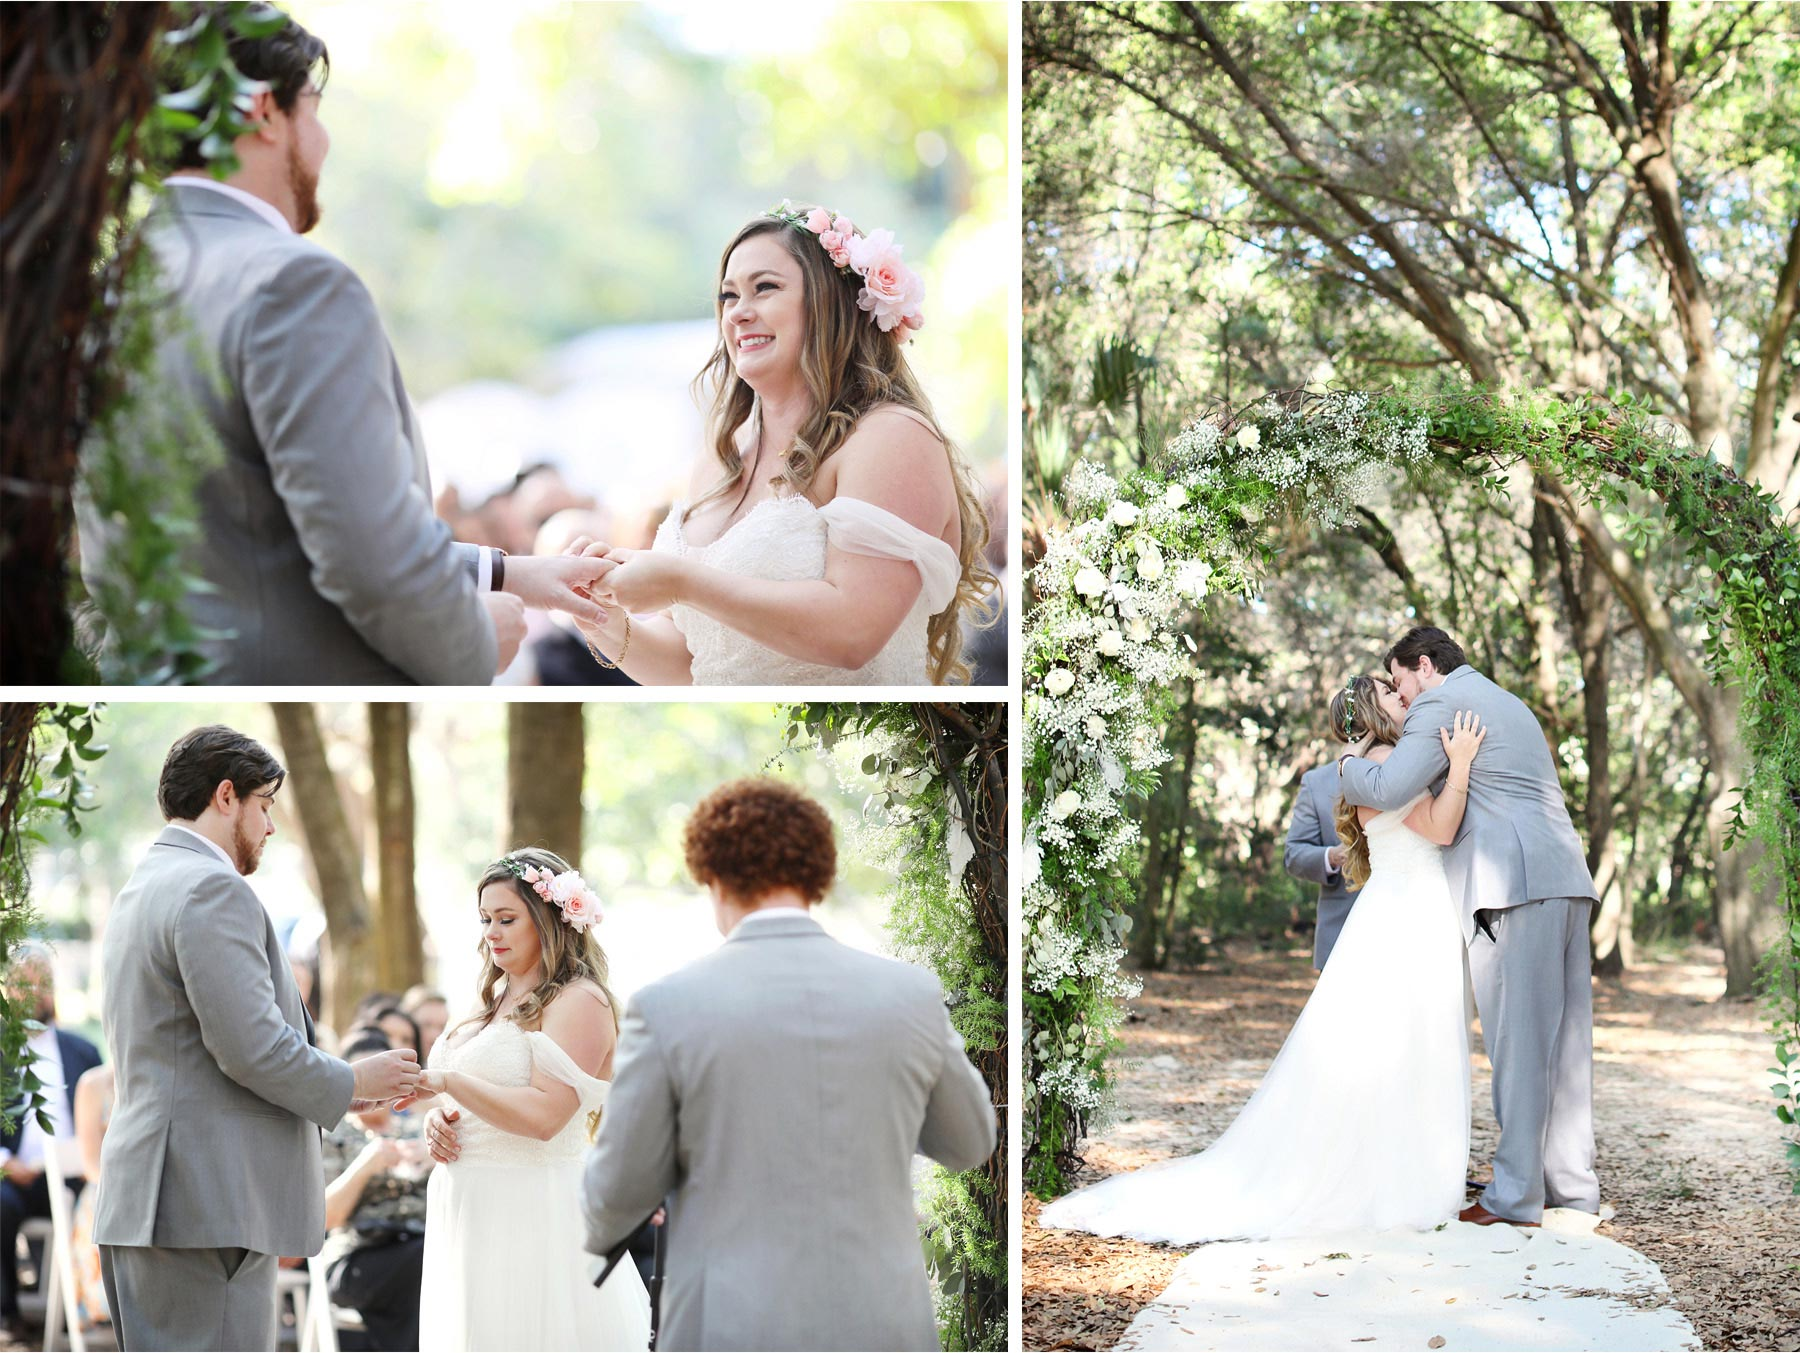 17-Brandon-Florida-Wedding-Photographer-by-Andrew-Vick-Photography-Casa-Lantana-Spring-Ceremony-Bride-Groom-Rings-Flower-Crown-Kiss-Vintage-Kristianna-and-Ben.jpg